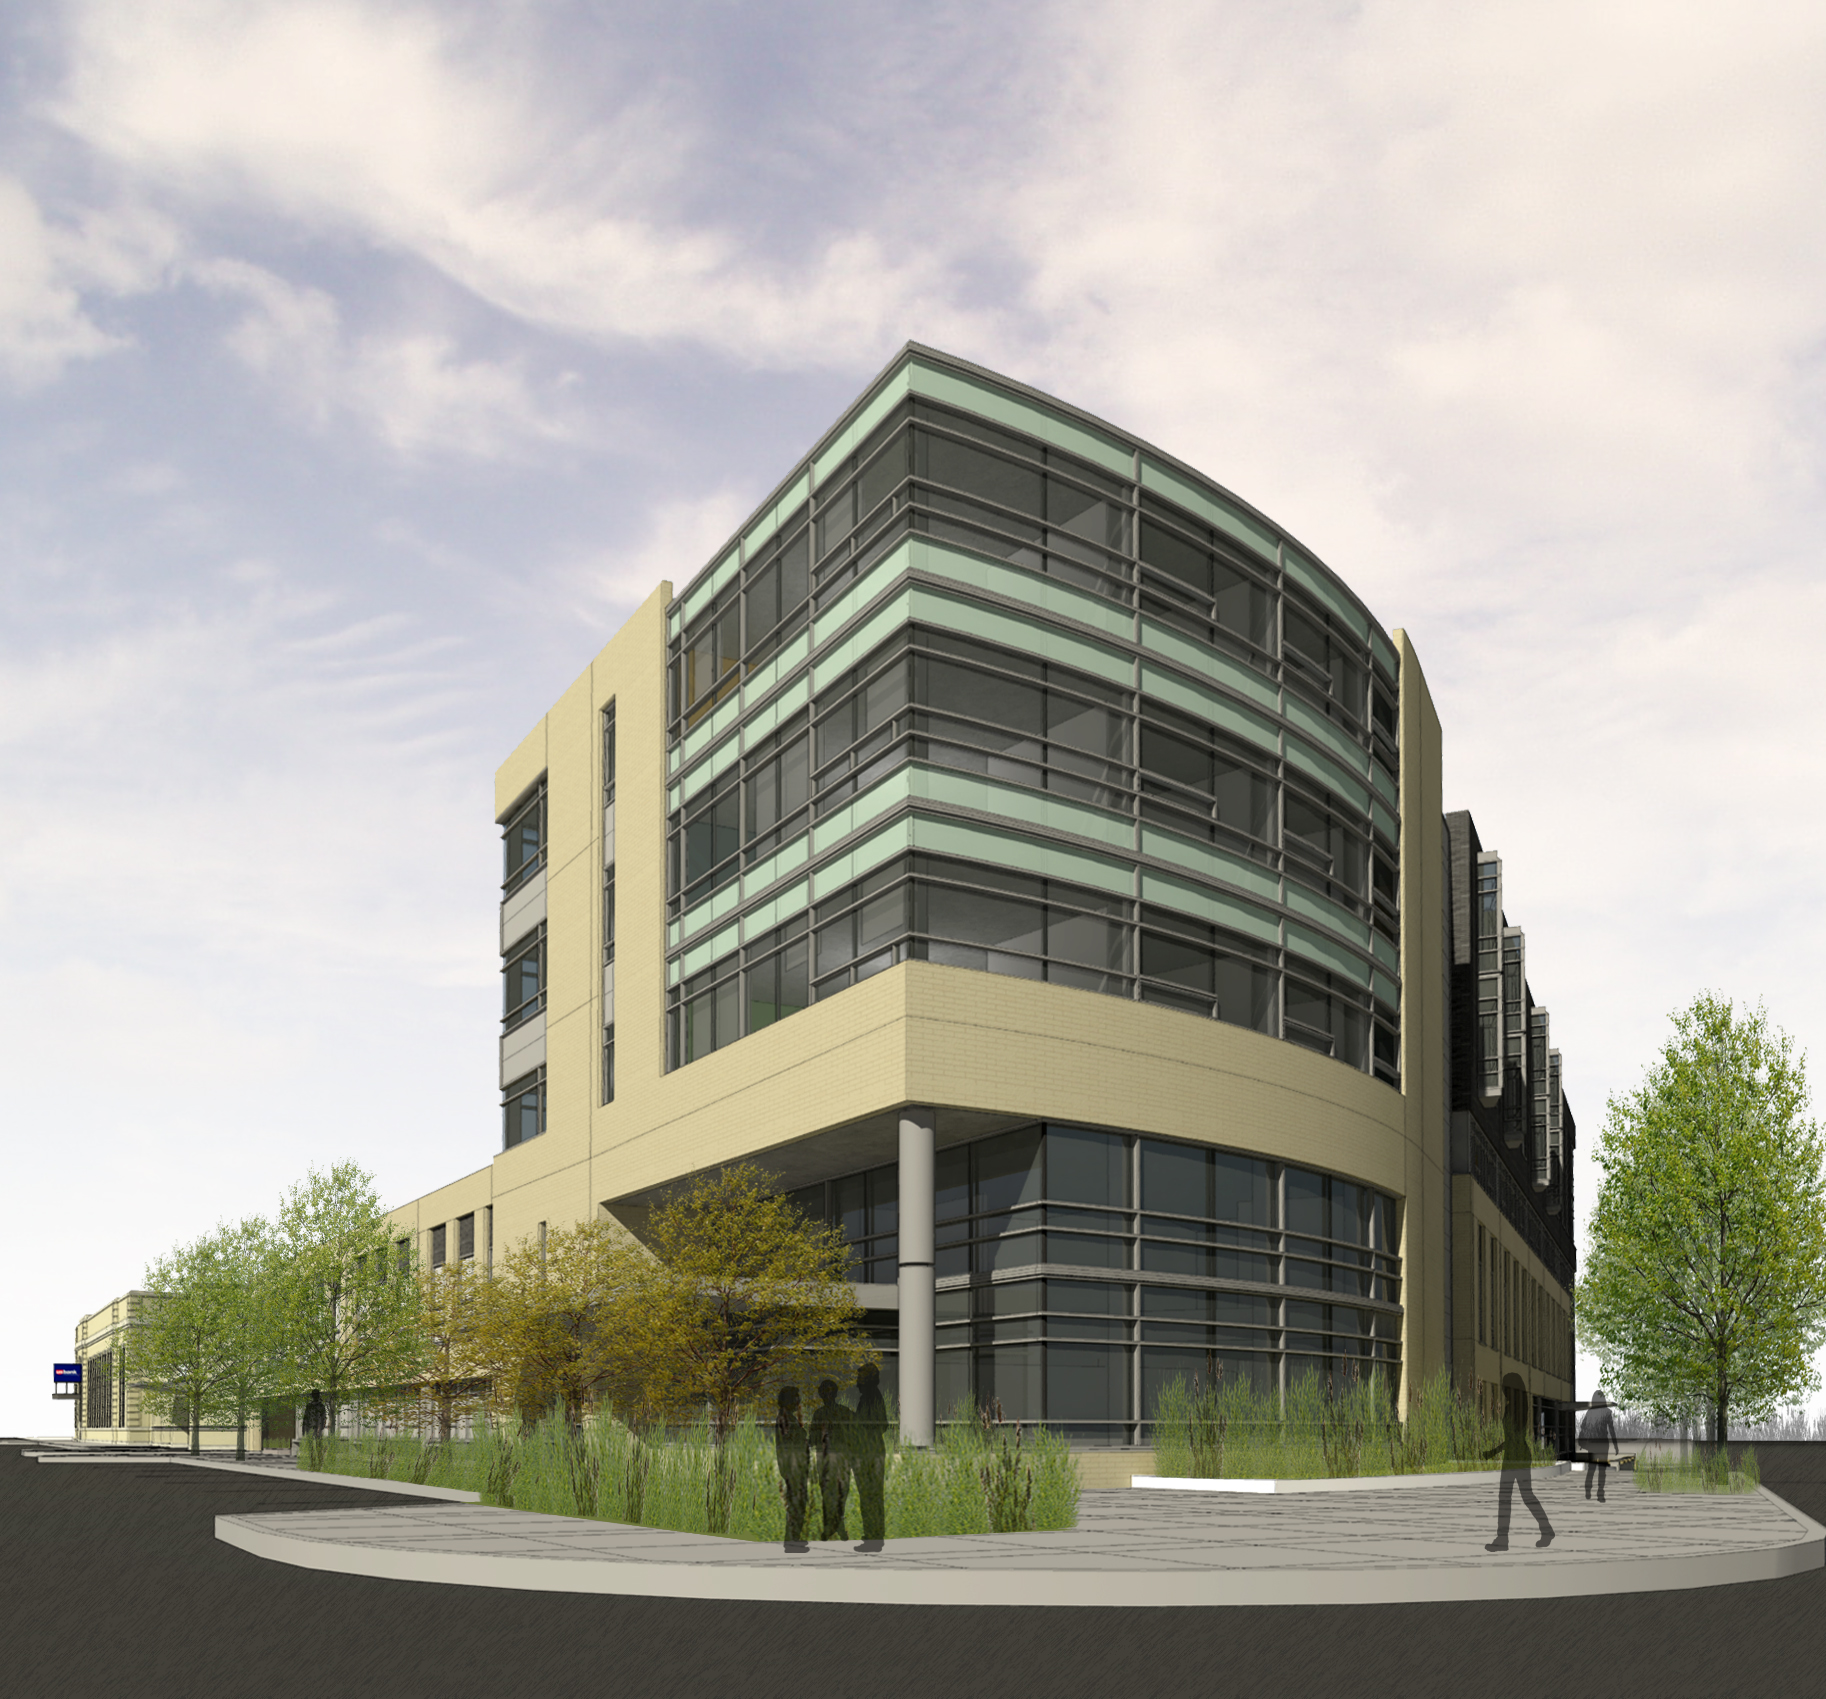 Greenwich ParkApartmentsZoning Change Approved by Committee